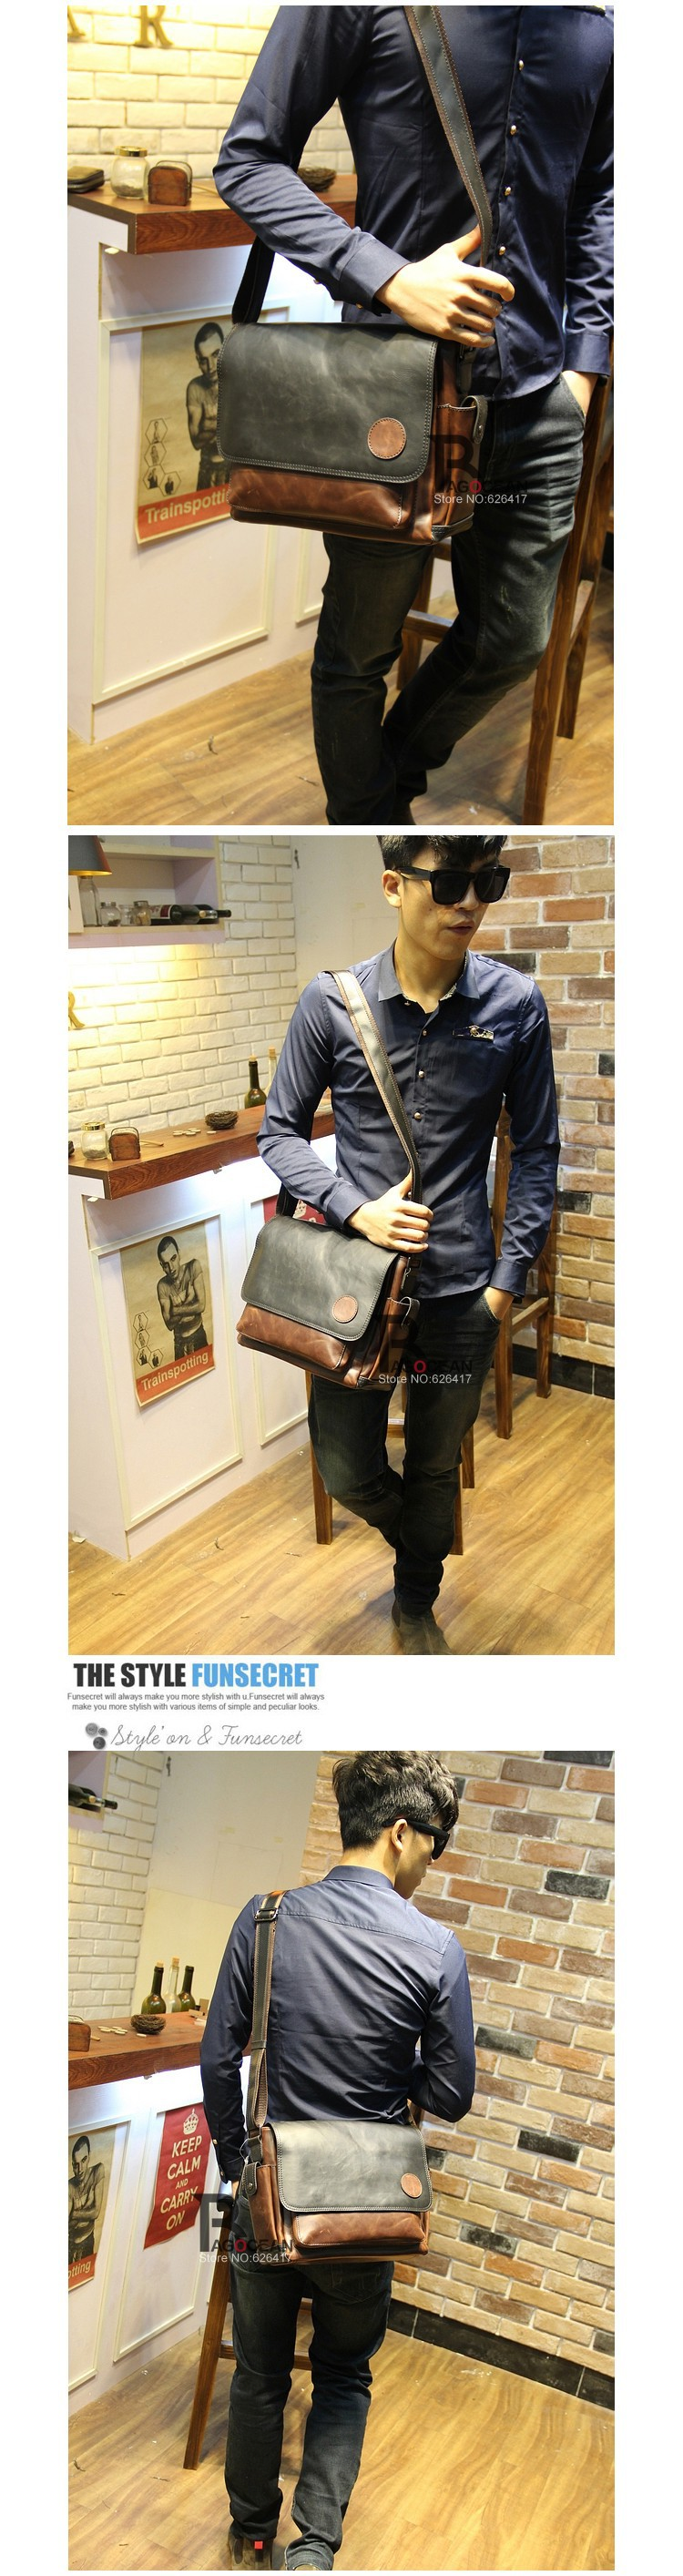 New Vintage Style Men Crazy Horse PU Leather Shoulder Travel Bags Cross Body Messenger Bags Students School Bag Casual Bags 22